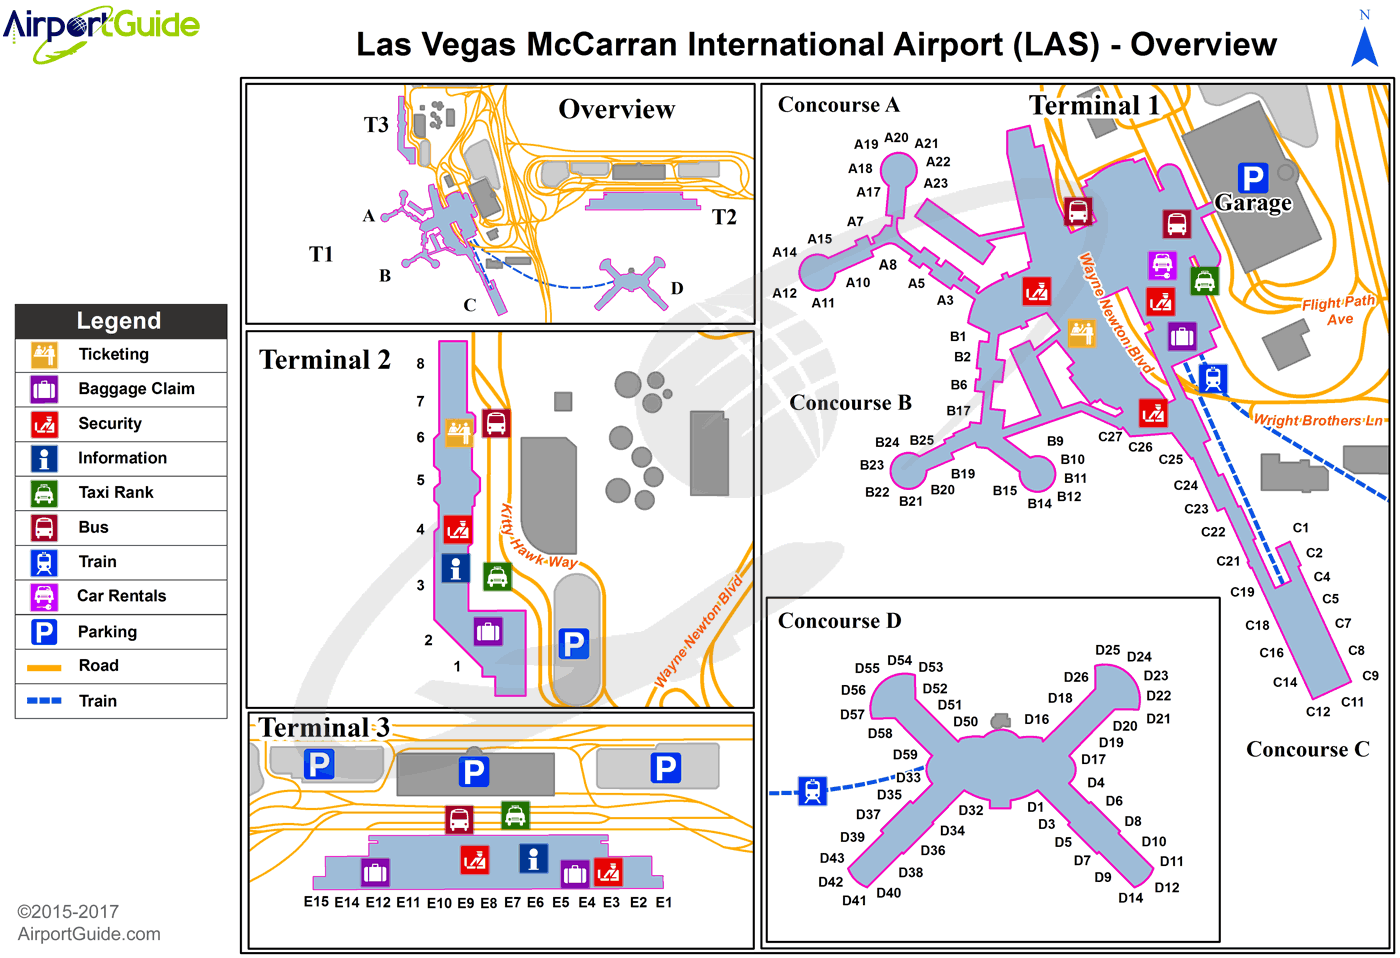 Las Vegas Mc Carran International (LAS) Airport Terminal